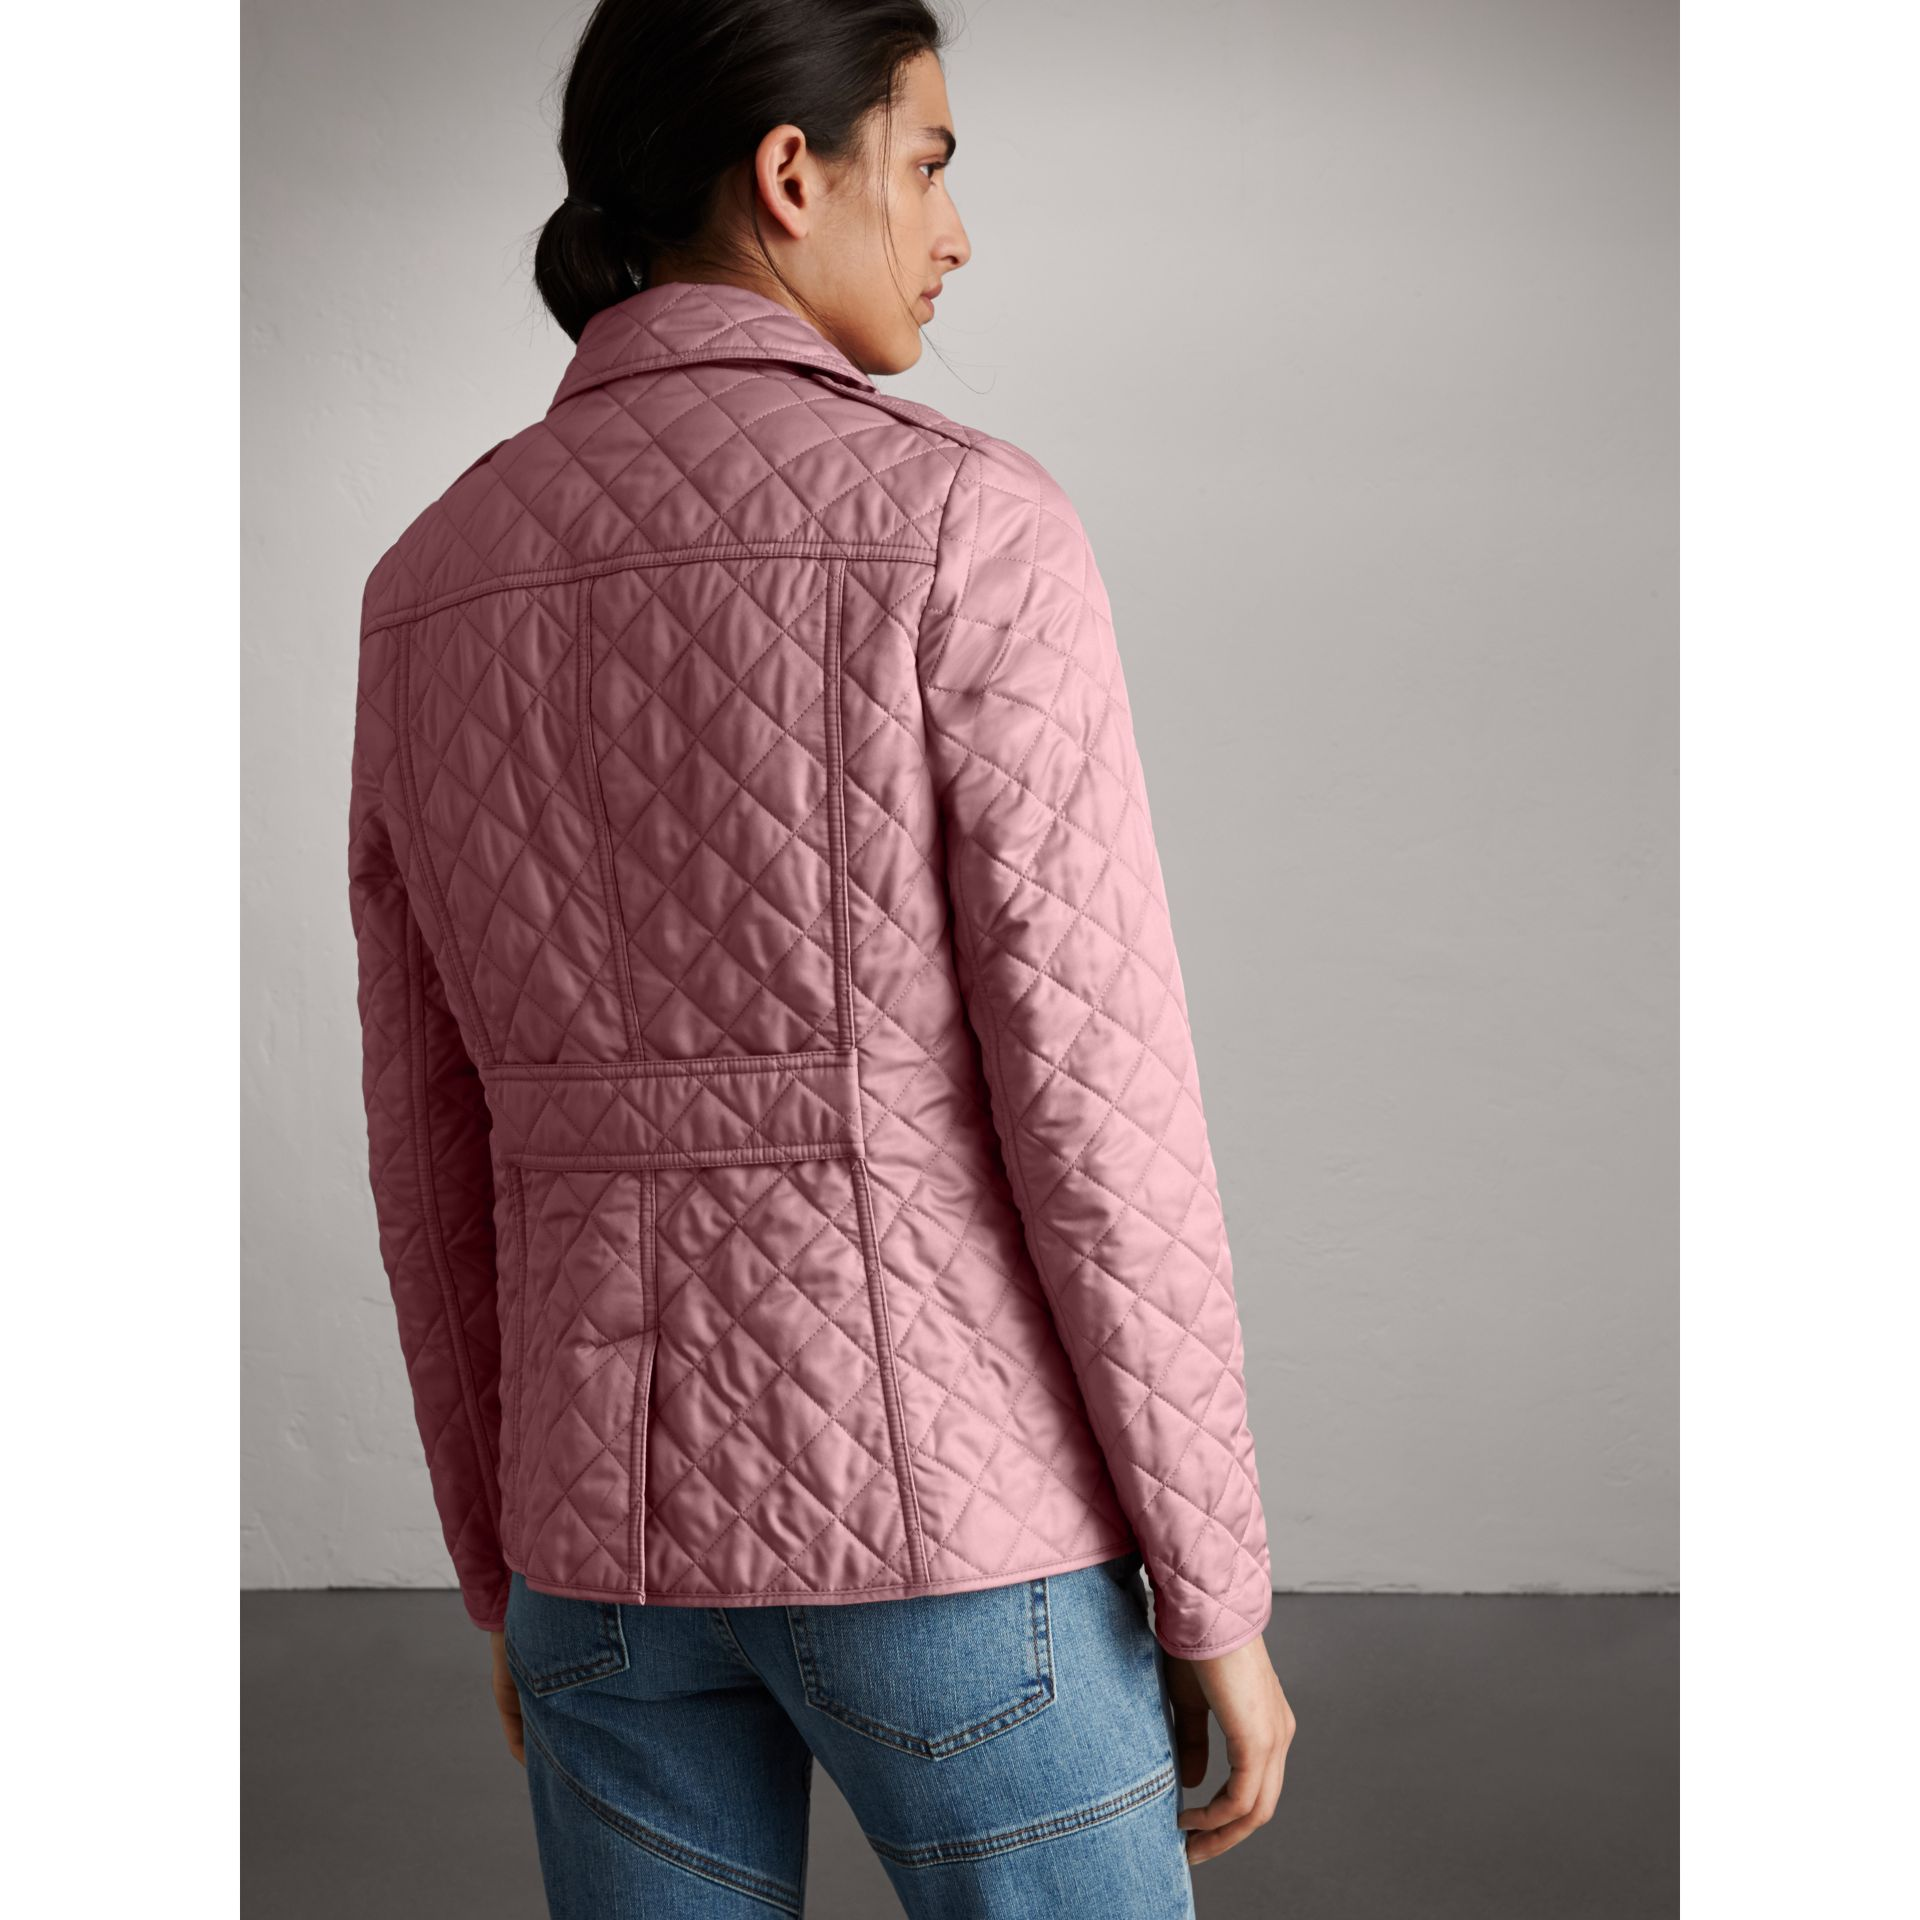 Diamond Quilted Jacket in Vintage Rose - Women | Burberry Australia - gallery image 3